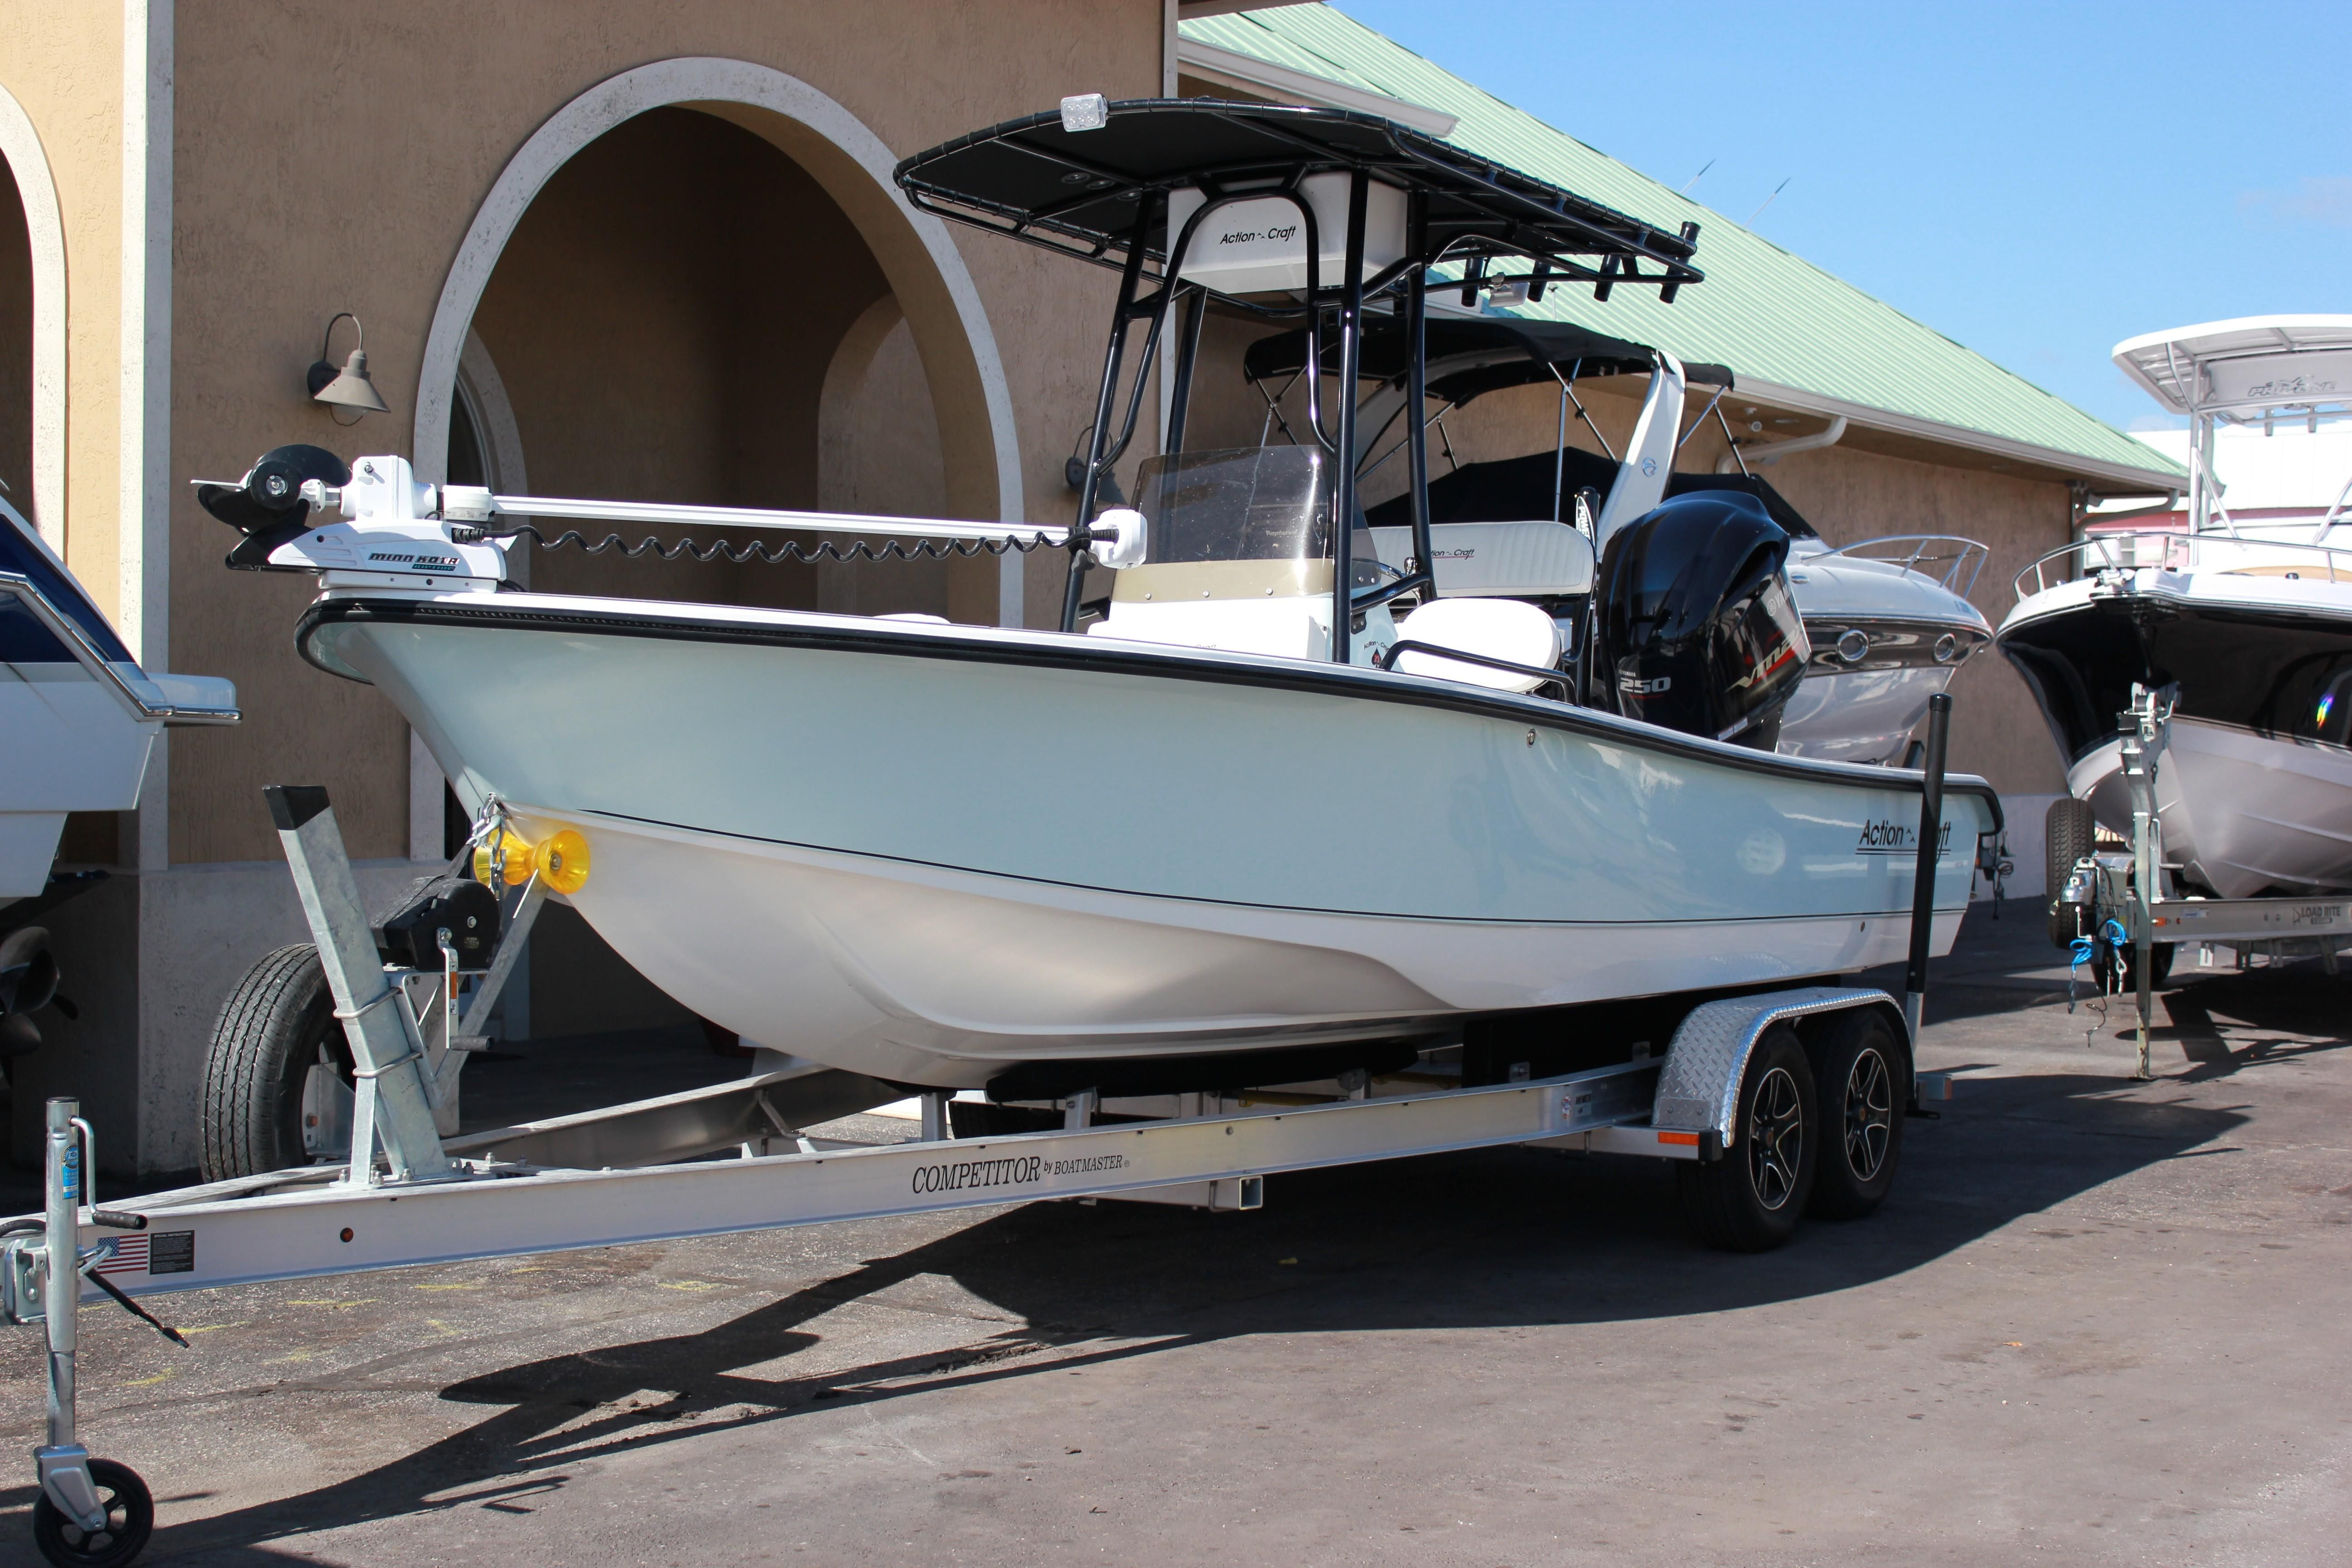 2017 action craft 2110 coastal bay power boat for sale for Action craft coastal bay